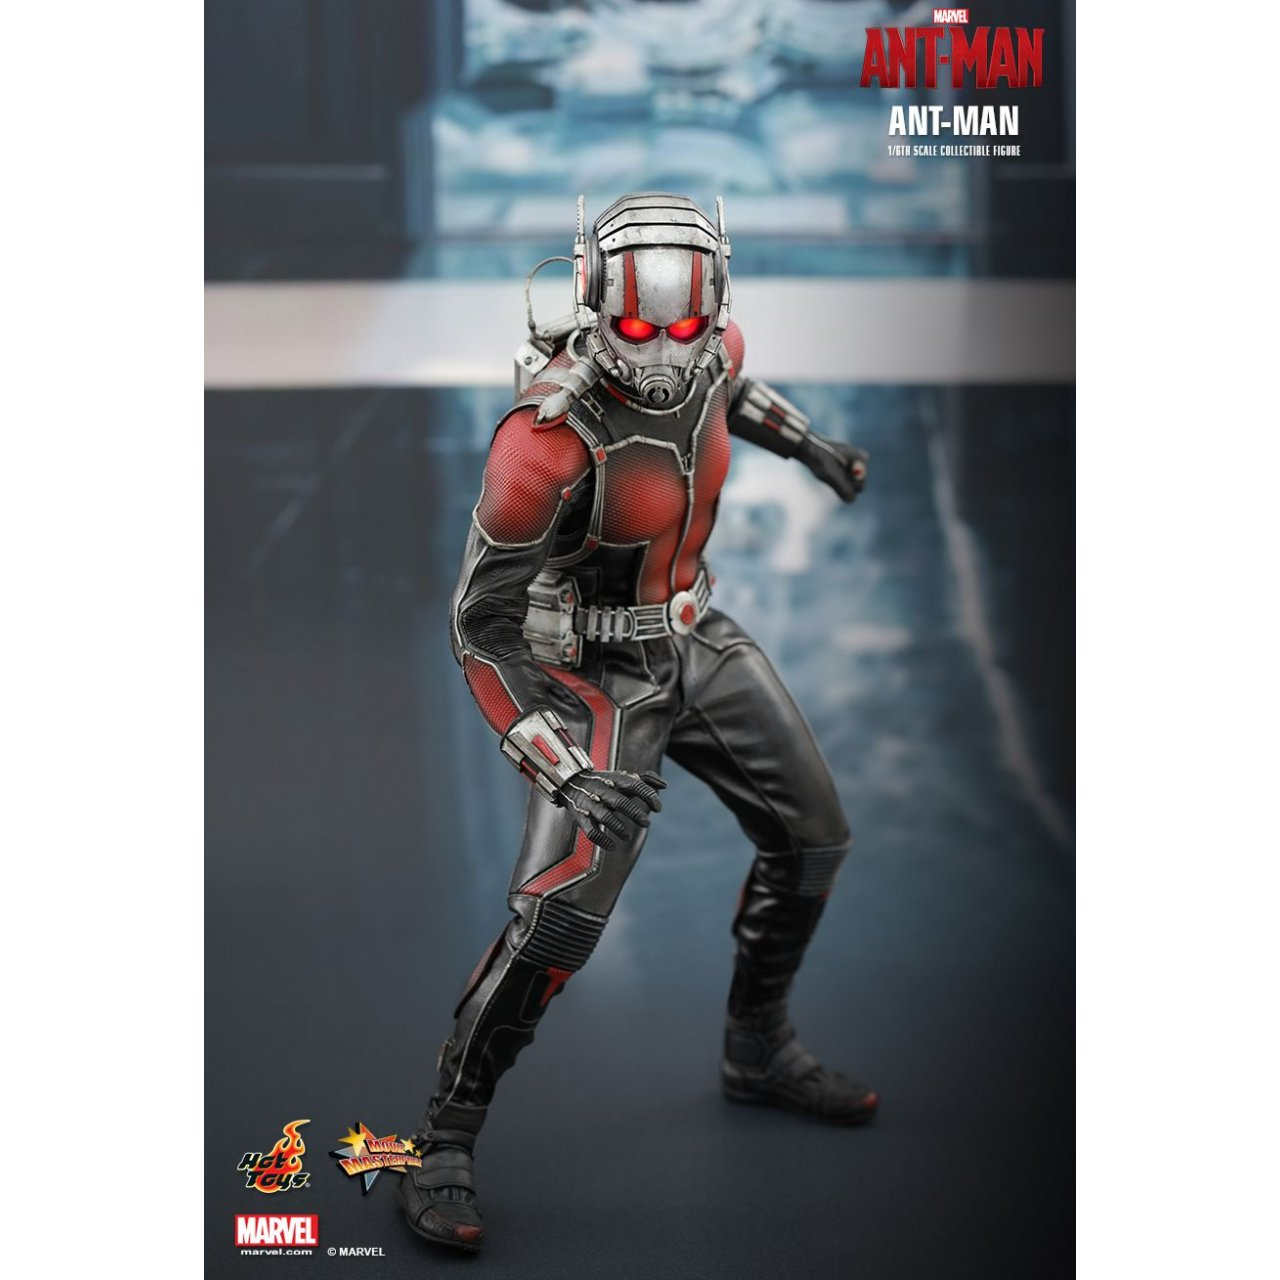 Hot Toys 16 Ant Man Figure Looks Awesome Disposable Media 1 6 Antman Scale Collectible 4206232